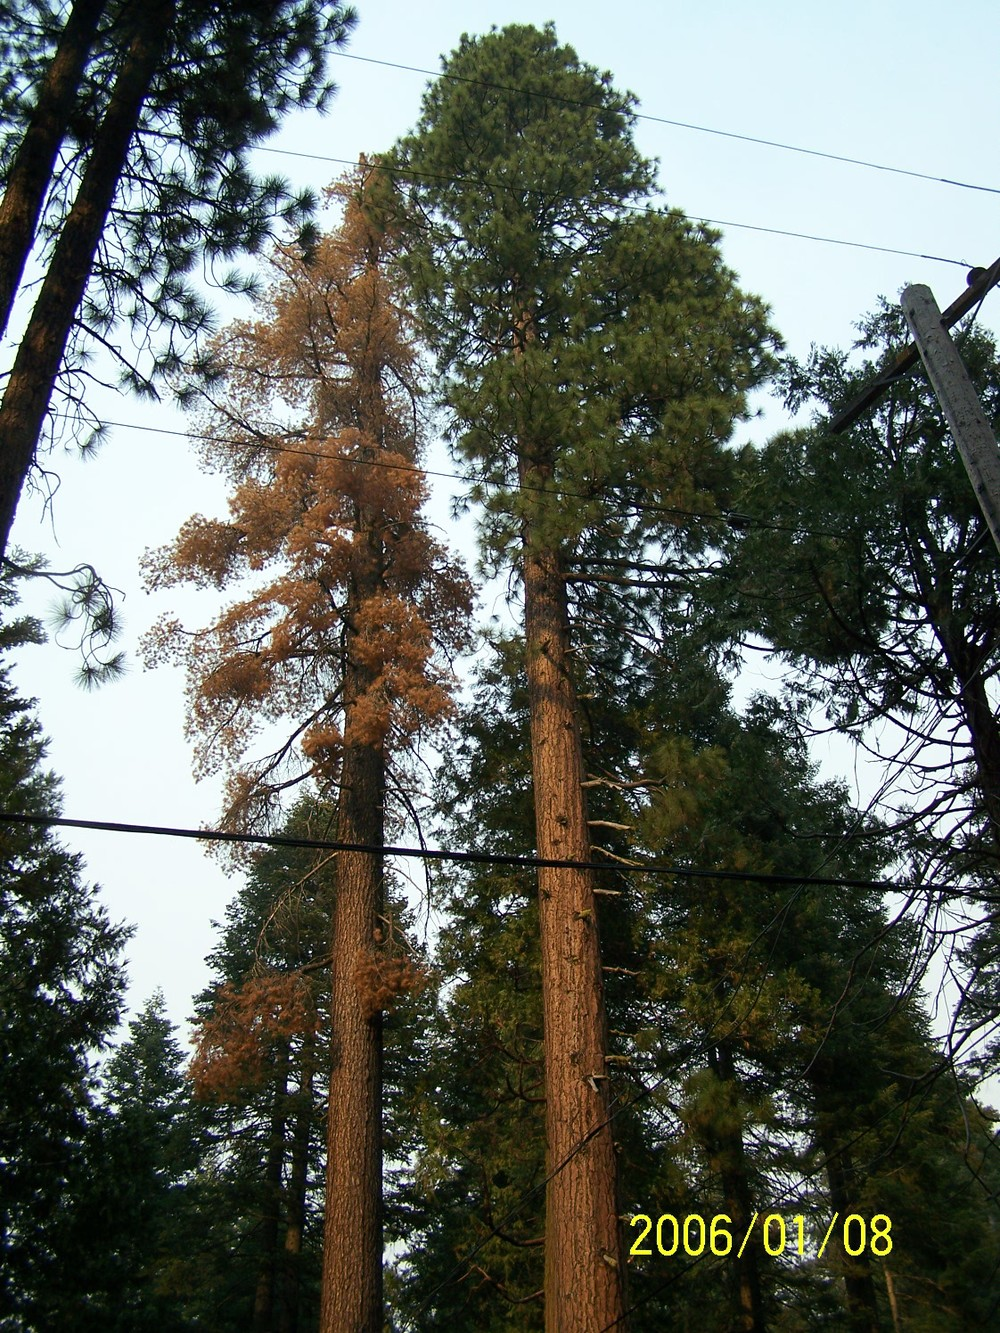 Sugar Pine (on the left) used for the Gig Nana replica